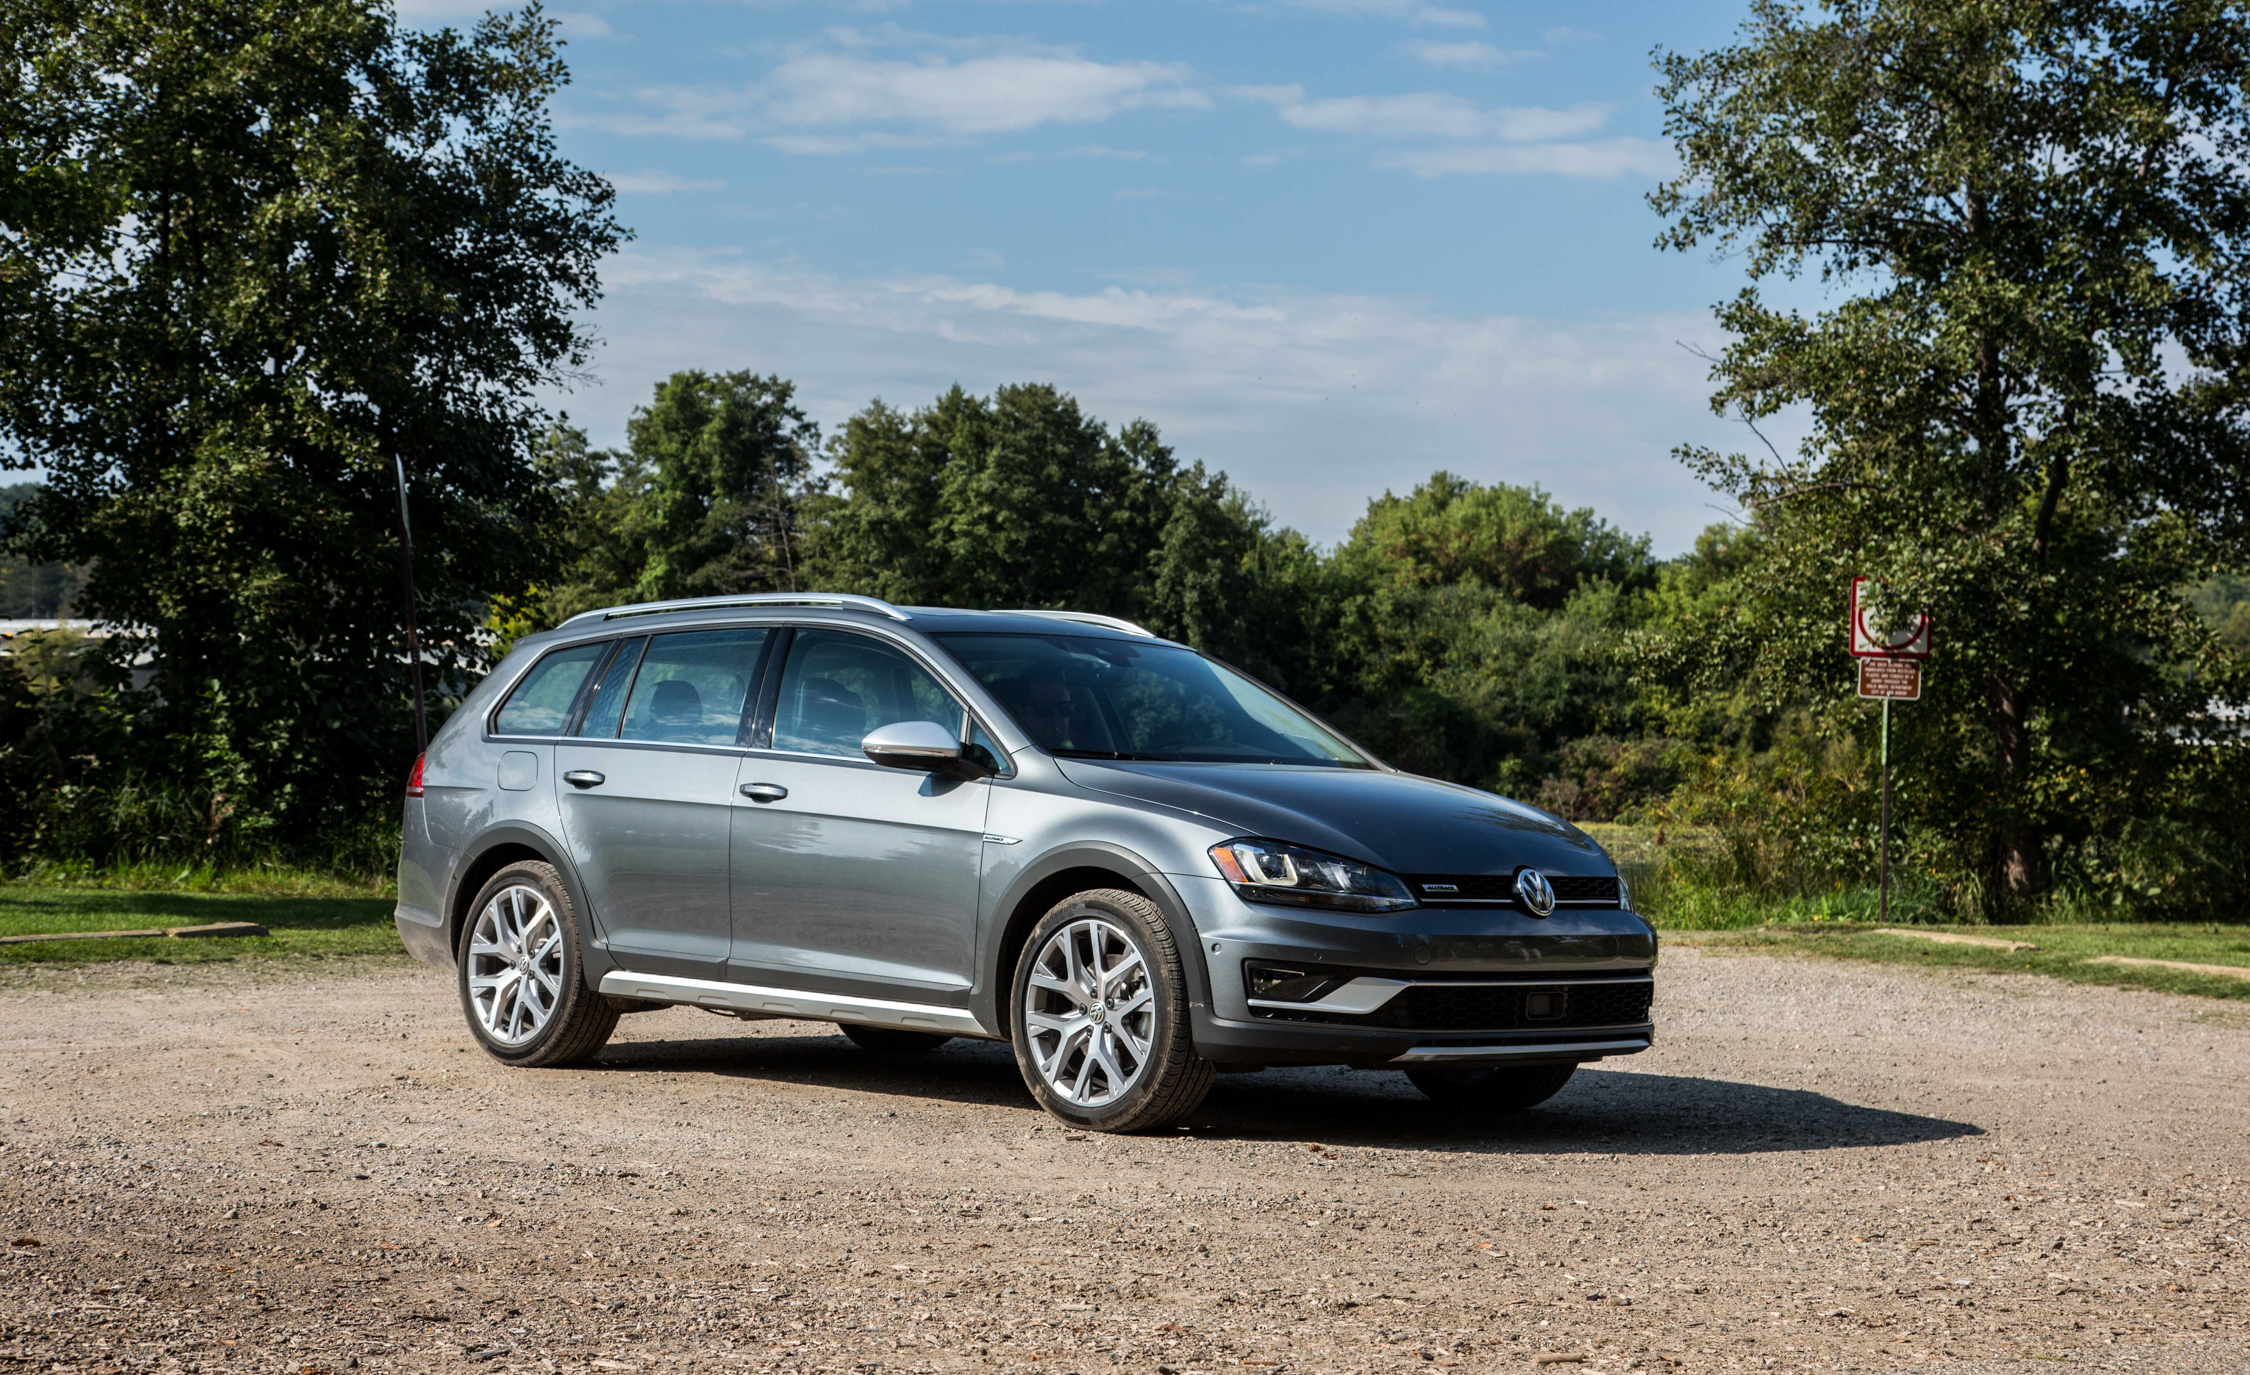 2017 Volkswagen Golf Alltrack Pictures Gallery (5 Images)